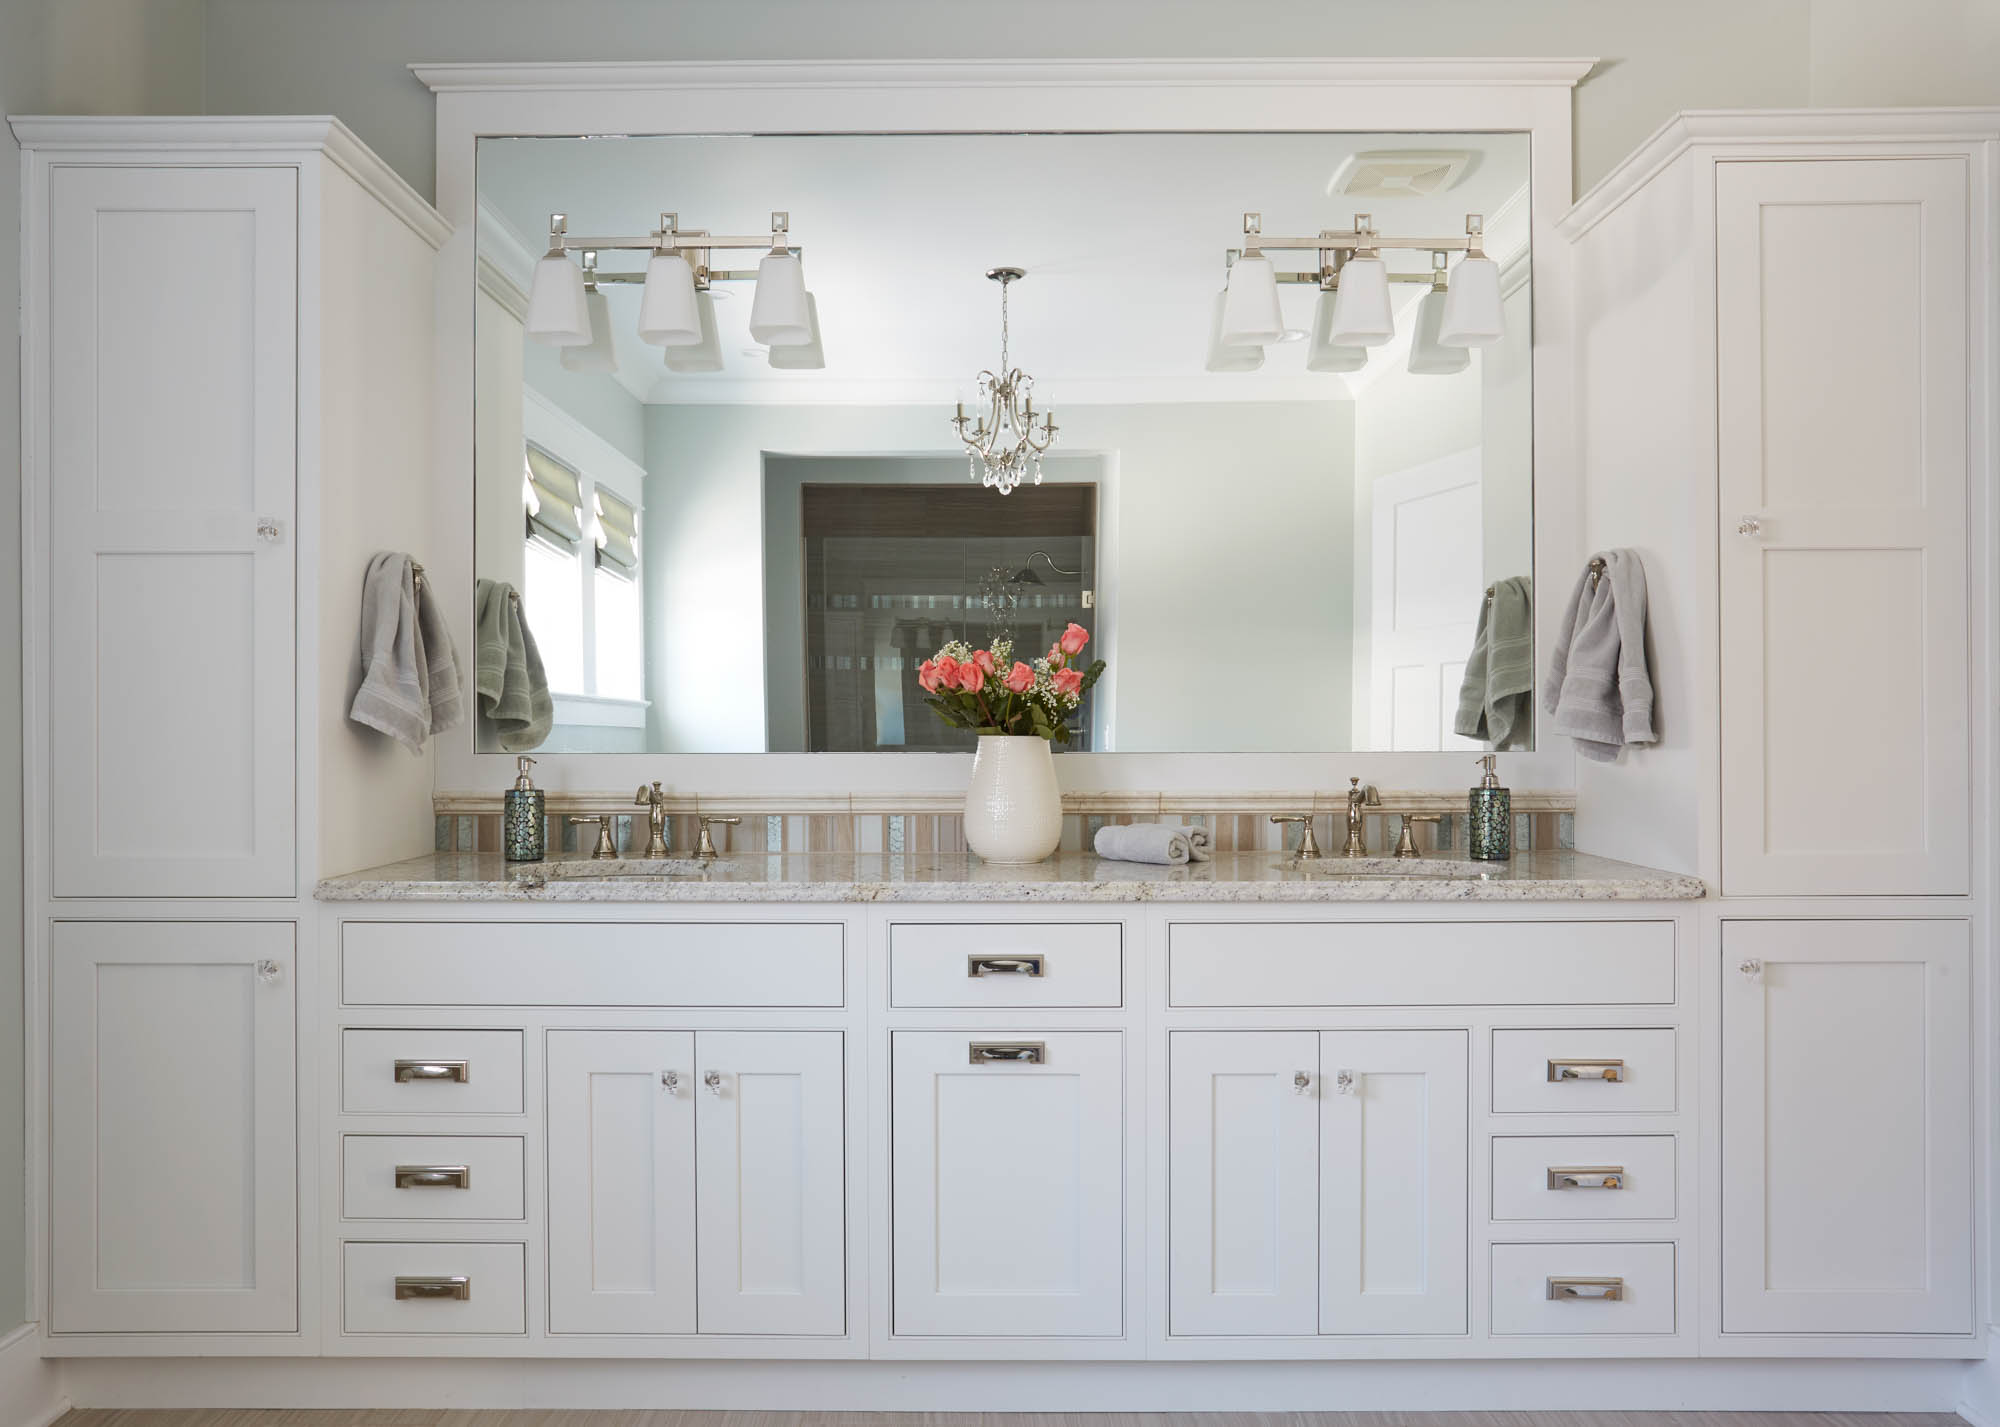 Painted master bathroom cabinets in Extra White by Showplace Cabinetry